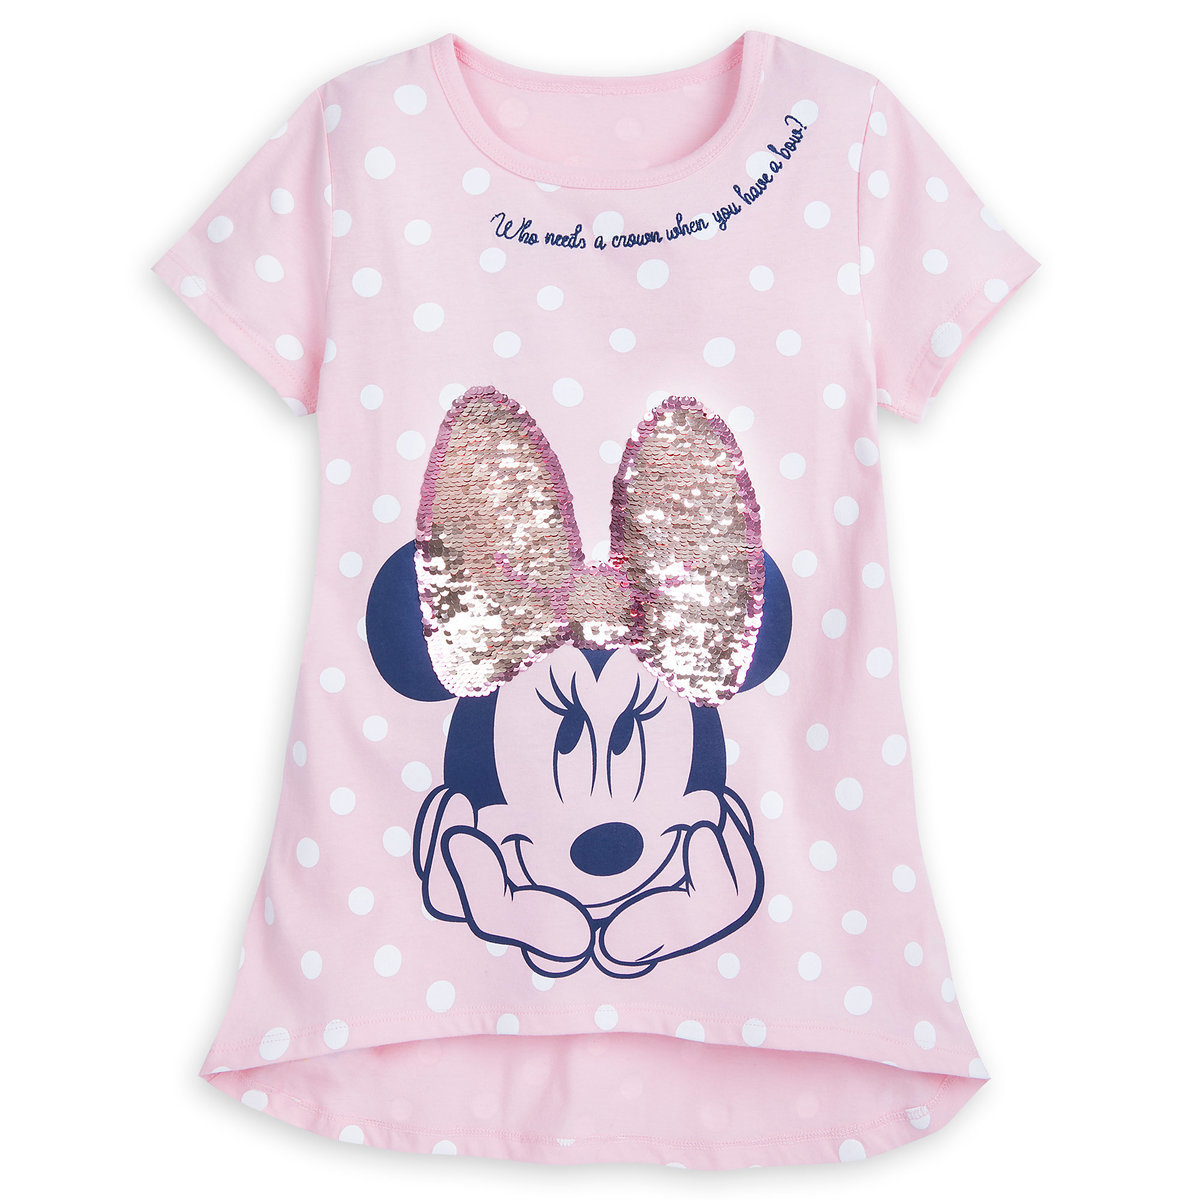 f4c979050 Product Image of Minnie Mouse Reversible Sequin T-Shirt for Girls - Walt  Disney World